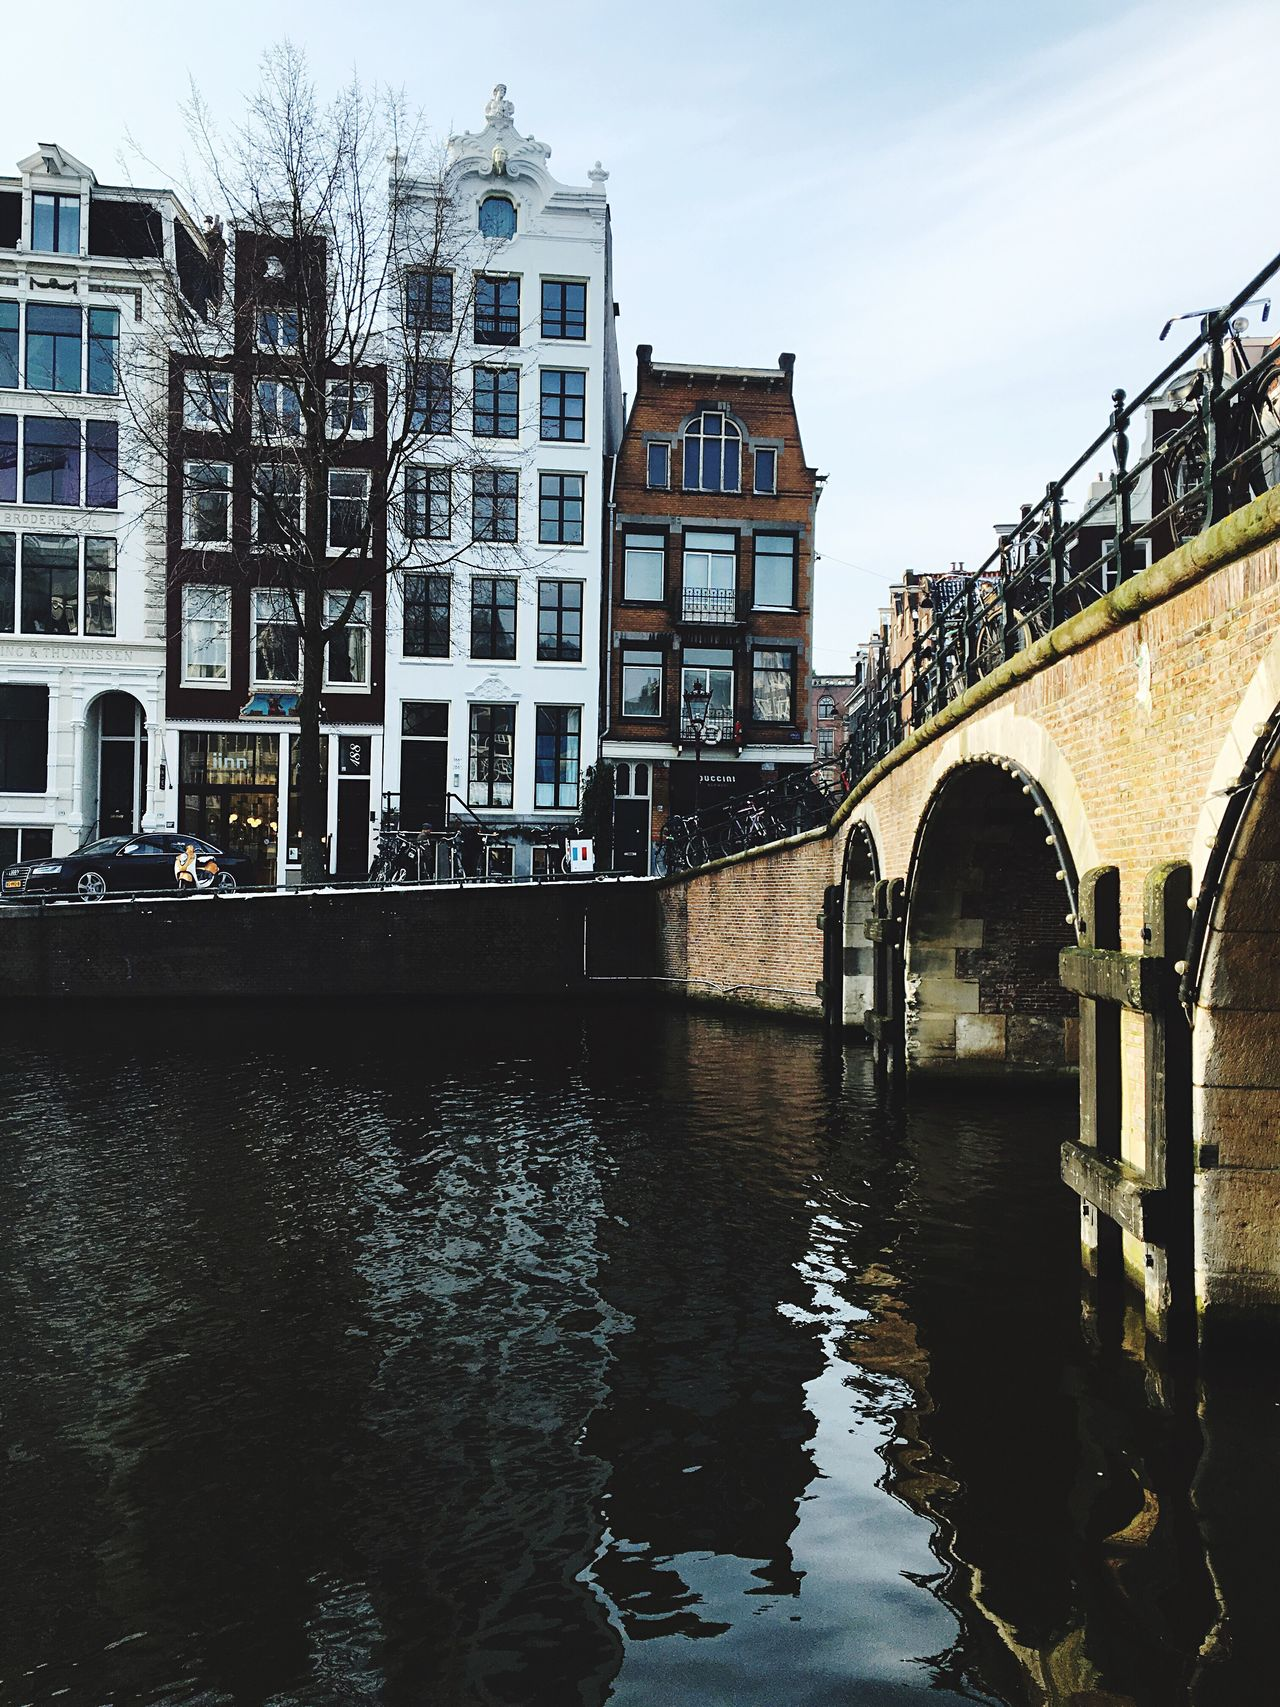 Architecture Built Structure Connection Canal Transportation Building Exterior City Arch Water Bridge - Man Made Structure Waterfront Travel Destinations Outdoors No People Sky Day